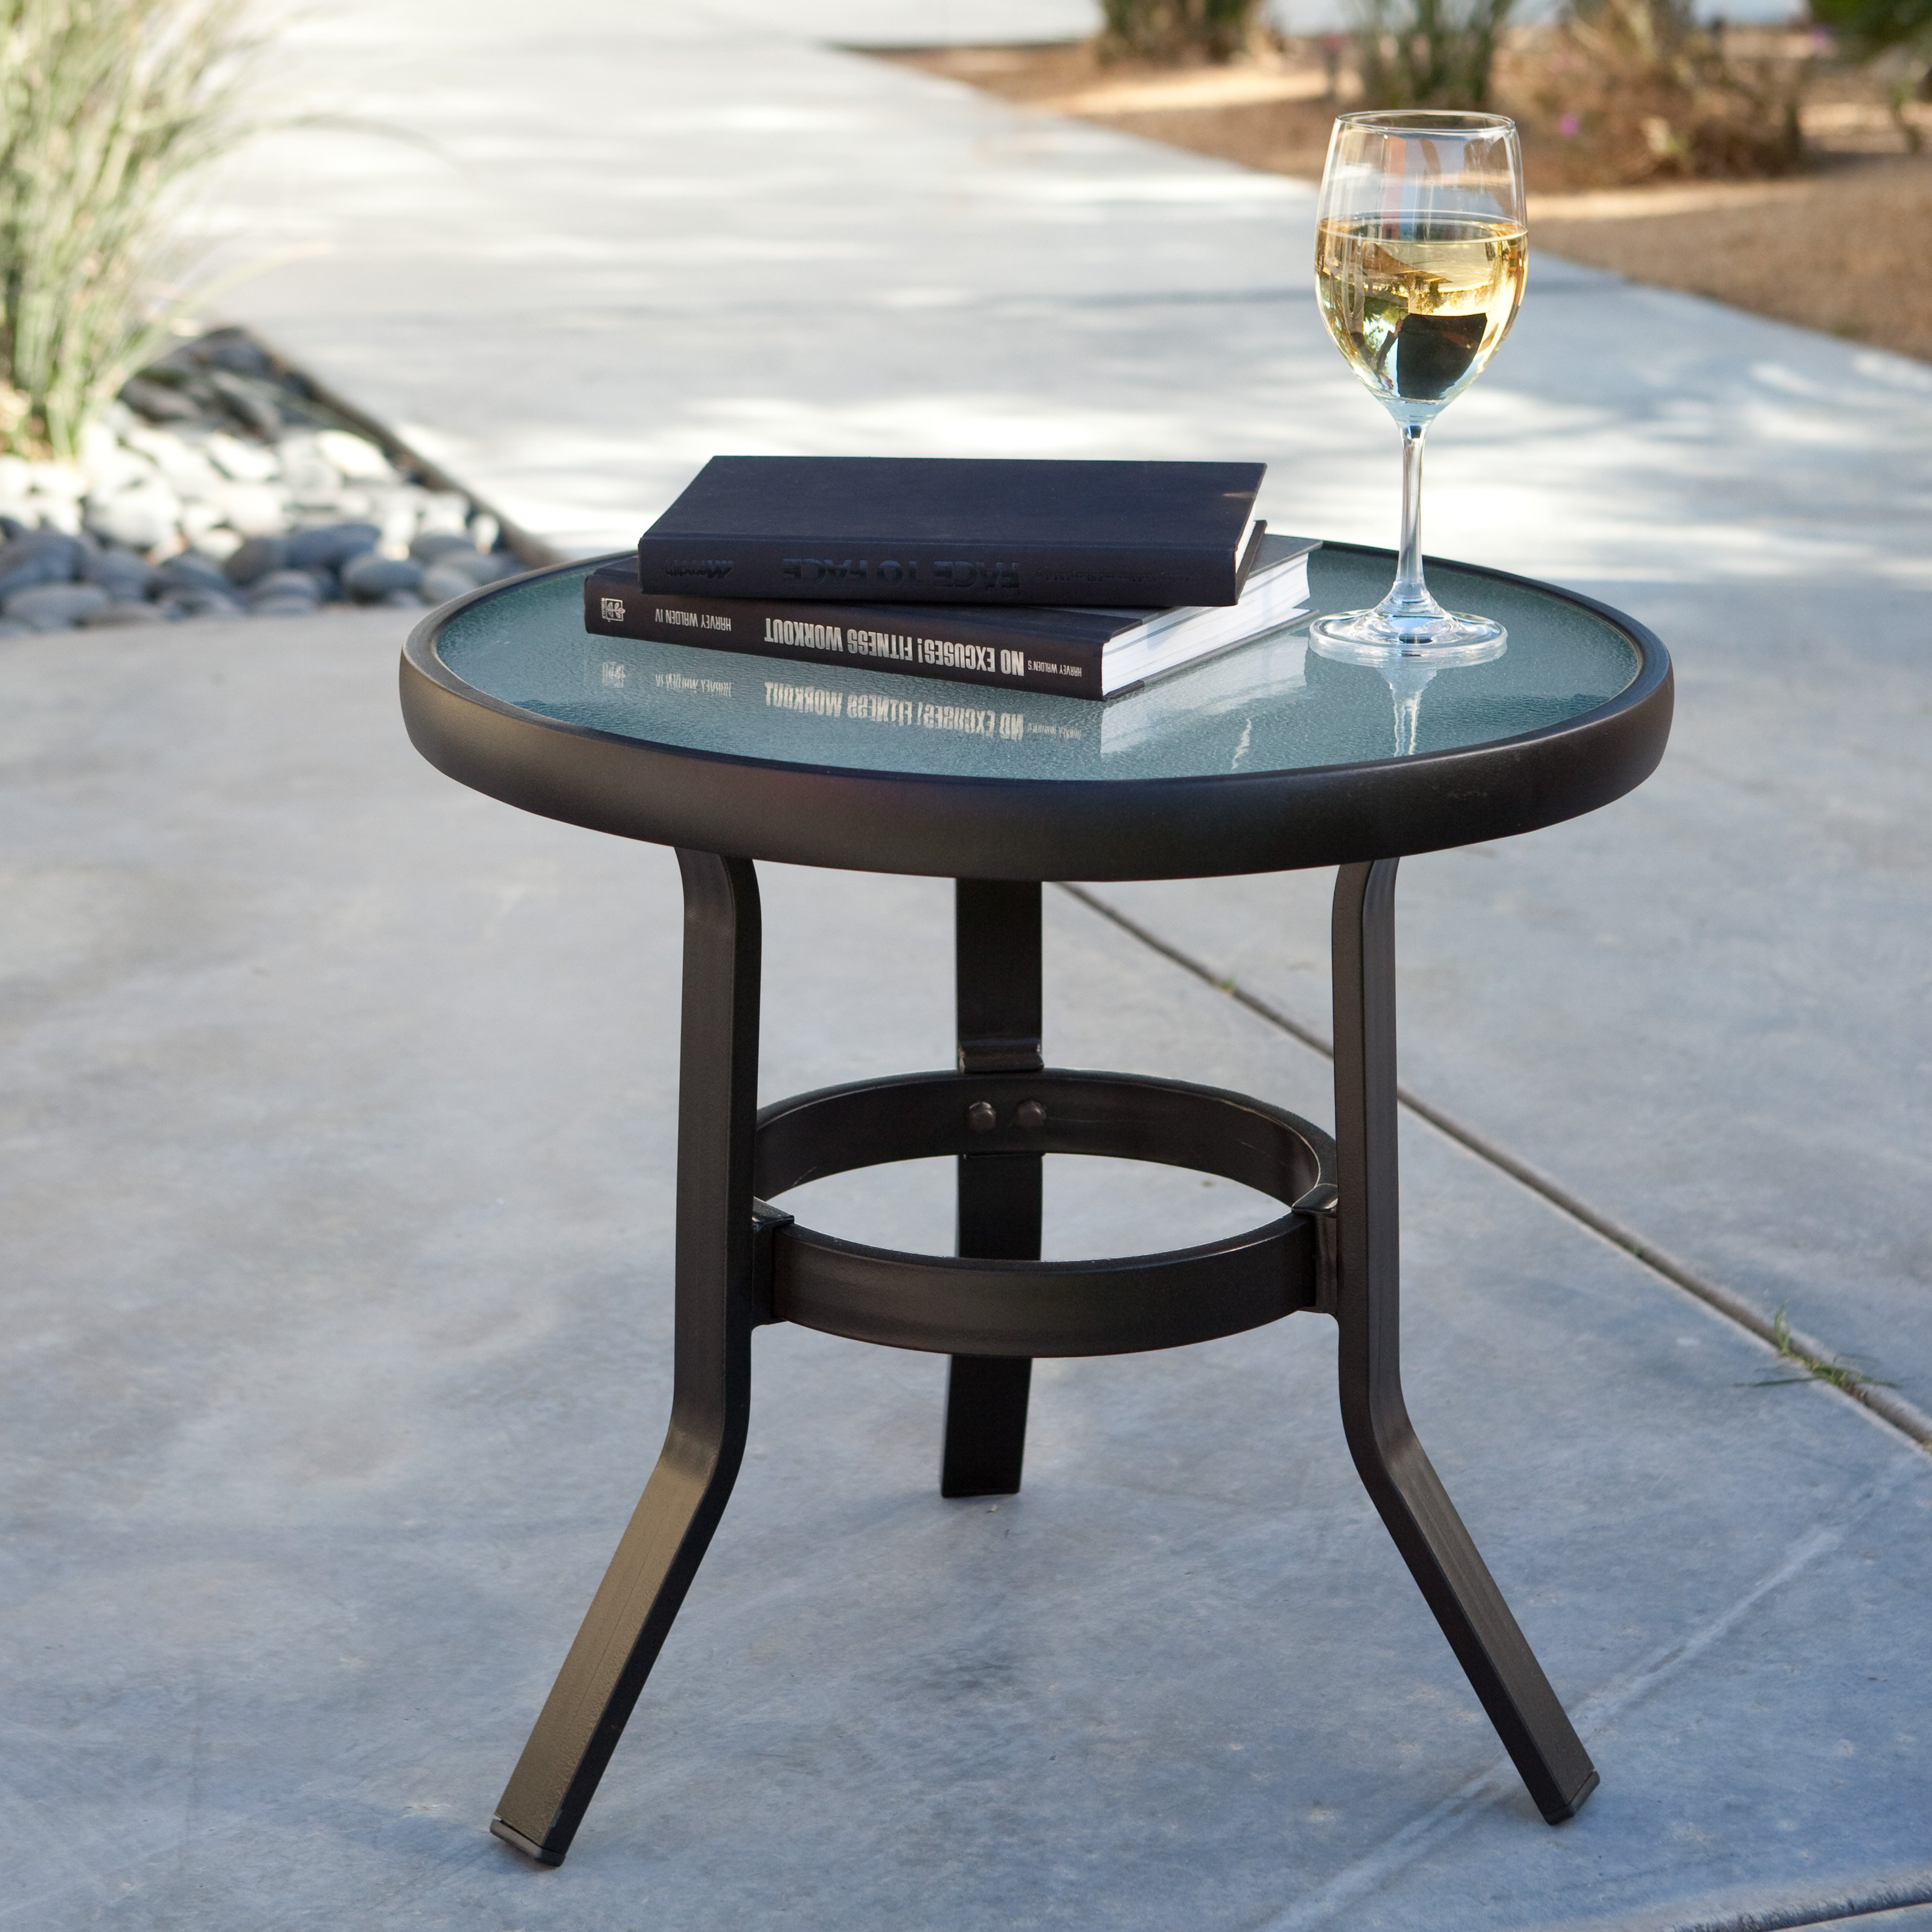 coral coast patio side table accent tables unfinished small target outdoor wood top metal legs coffee acacia furniture chests and cabinets rustic elm james martin dark oak ikea